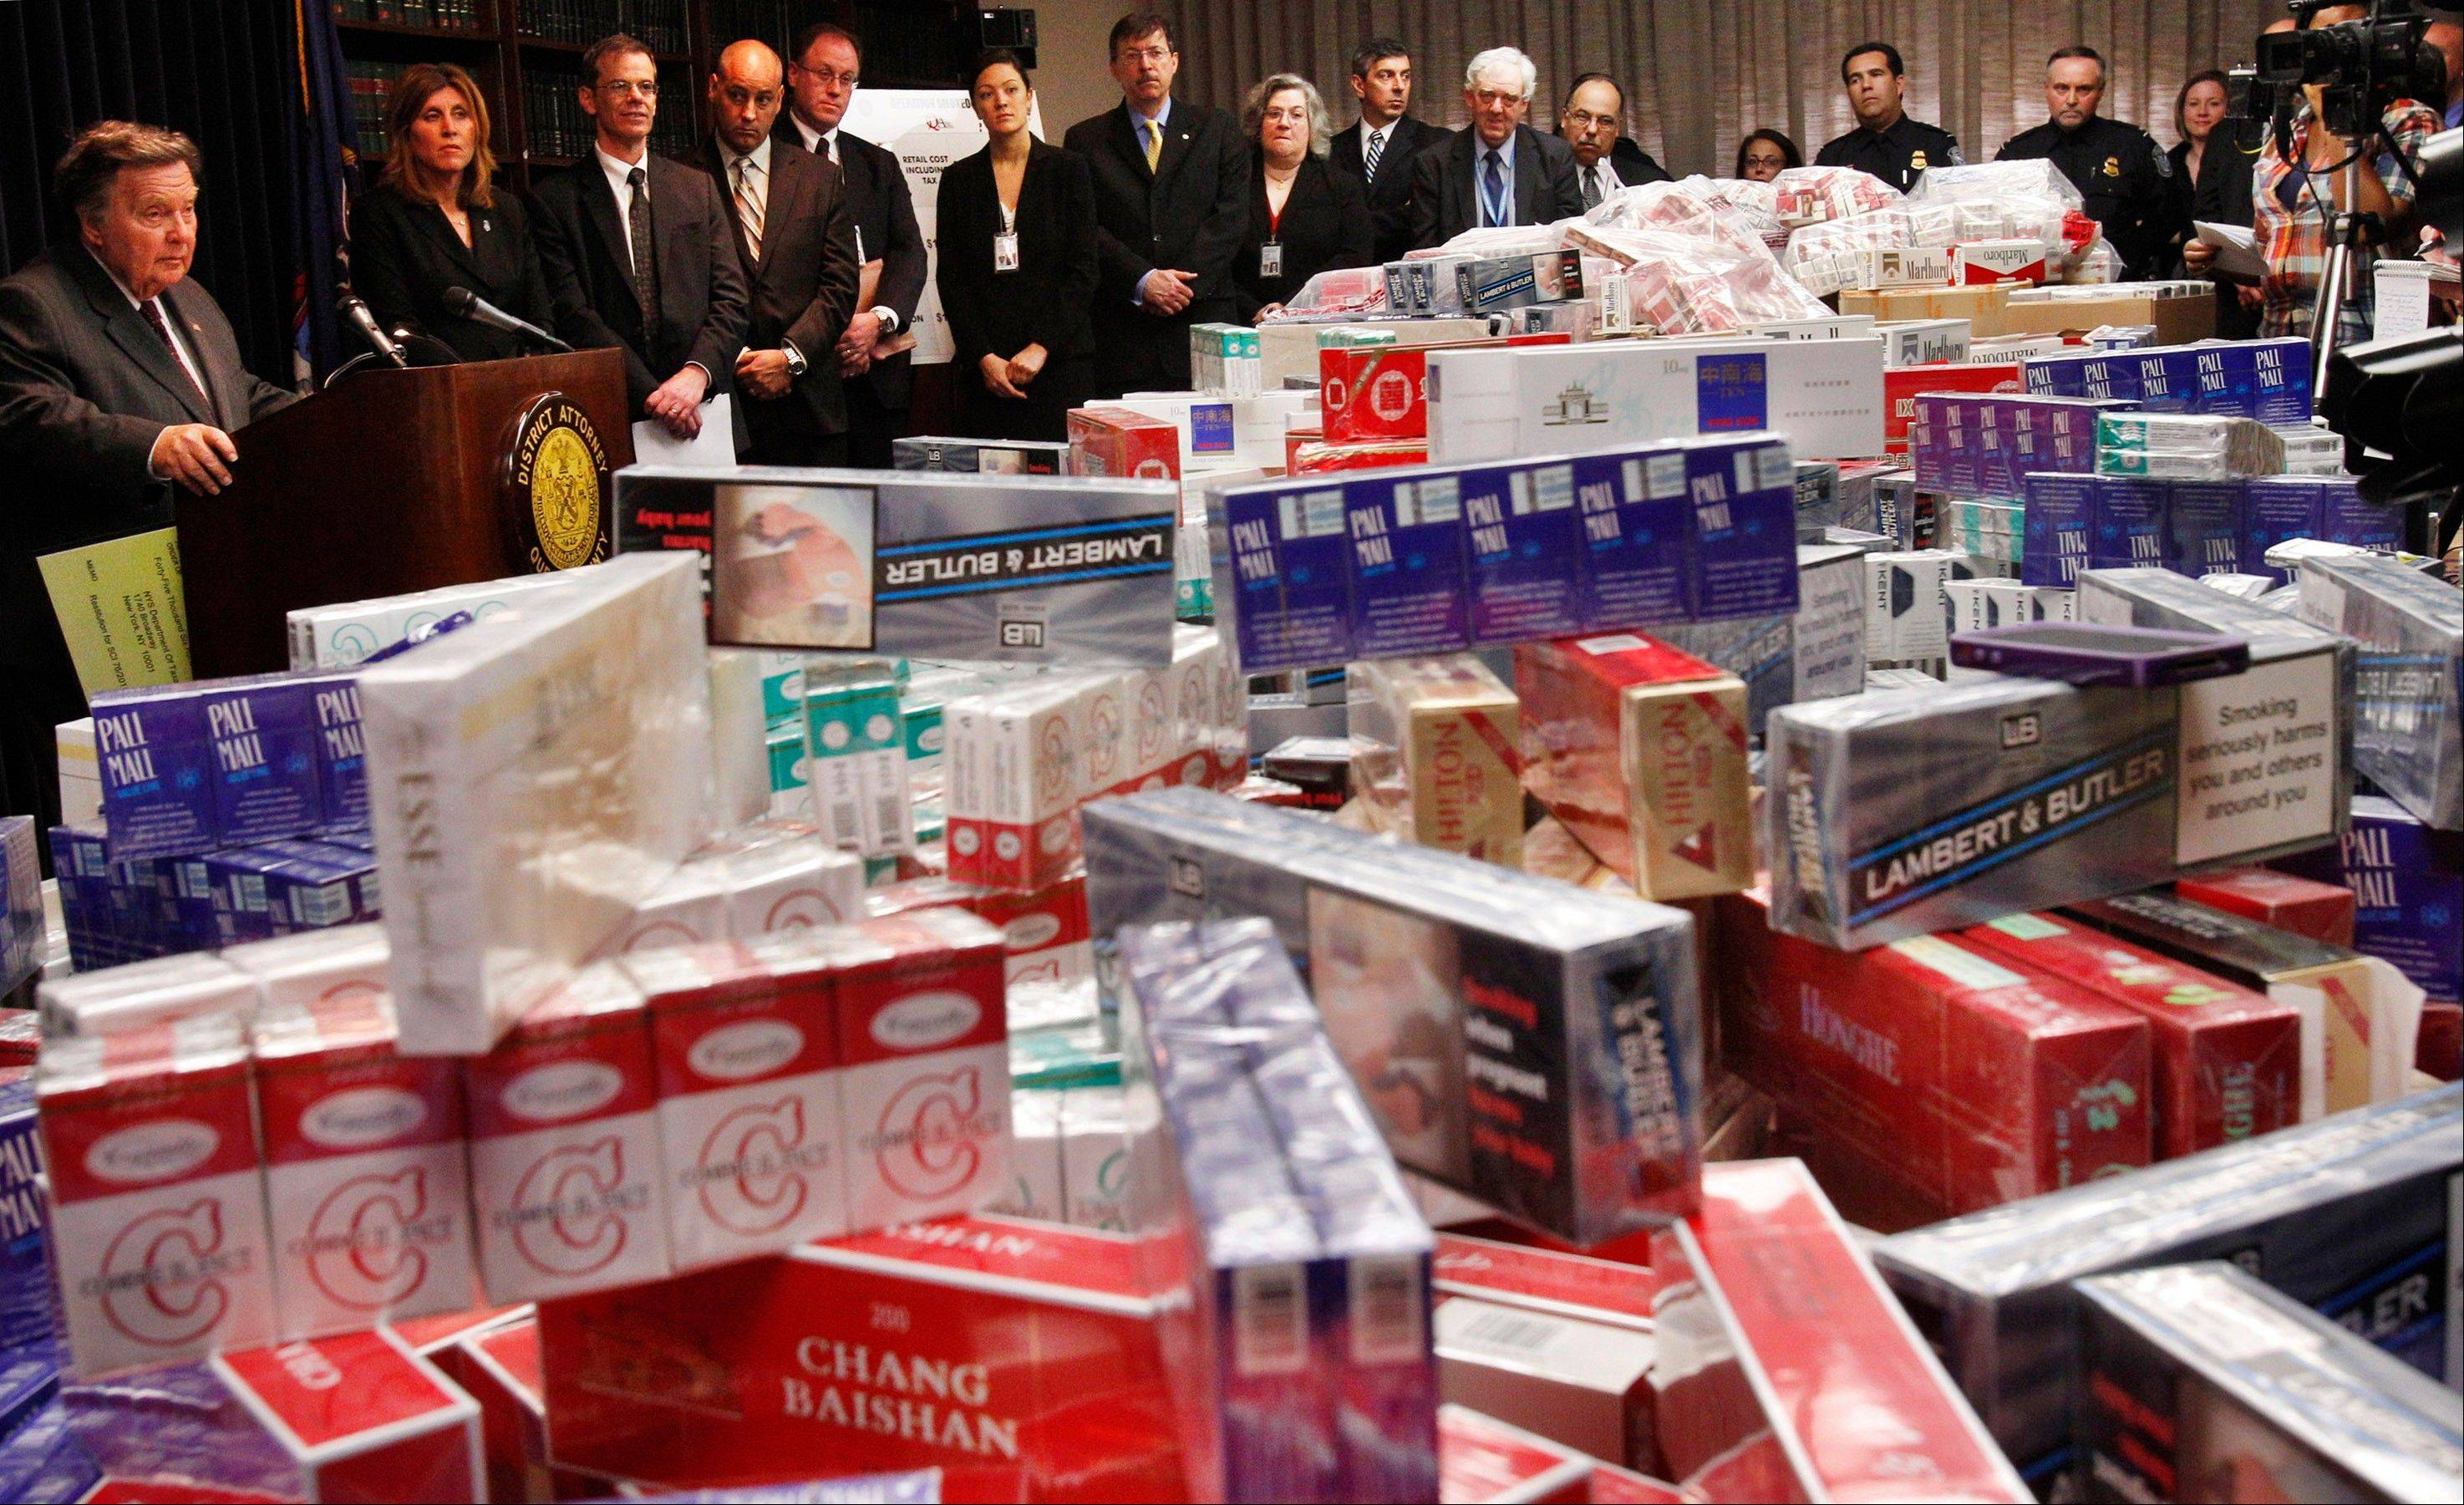 Queens District Attorney Richard Brown, left, joins state and federal officials in the Queens borough of New York to announce a crackdown on cigarette smugglers and tax evaders behind a display of cartons of confiscated cigarettes. Cigarette taxes have increased around the country. Though prices vary from state to state, on average a pack of cigarettes that would have sold for under $1.75 20 years ago would cost about $6 now.